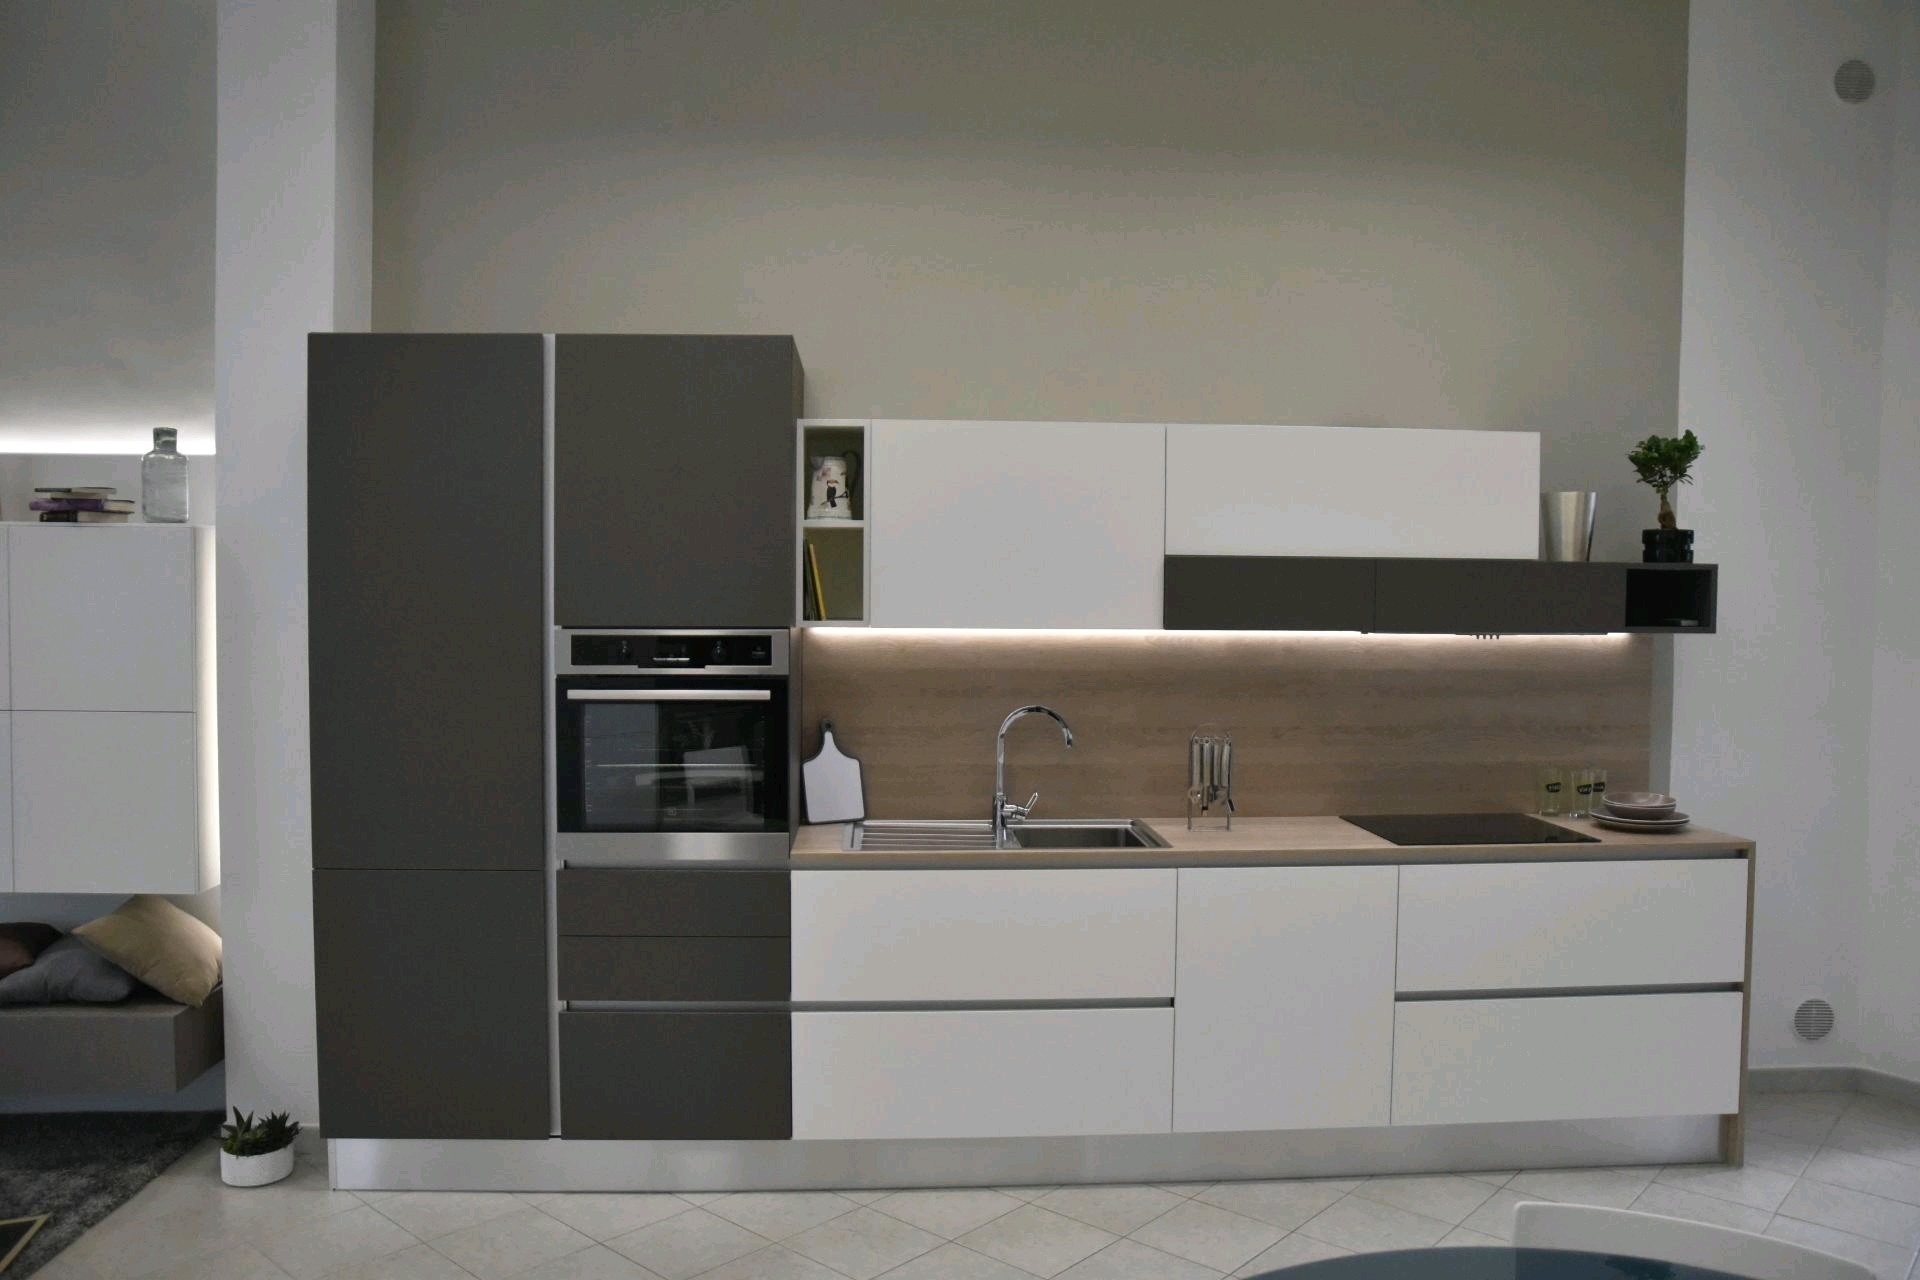 Kitchen Cabinet with White Lacquer Finish